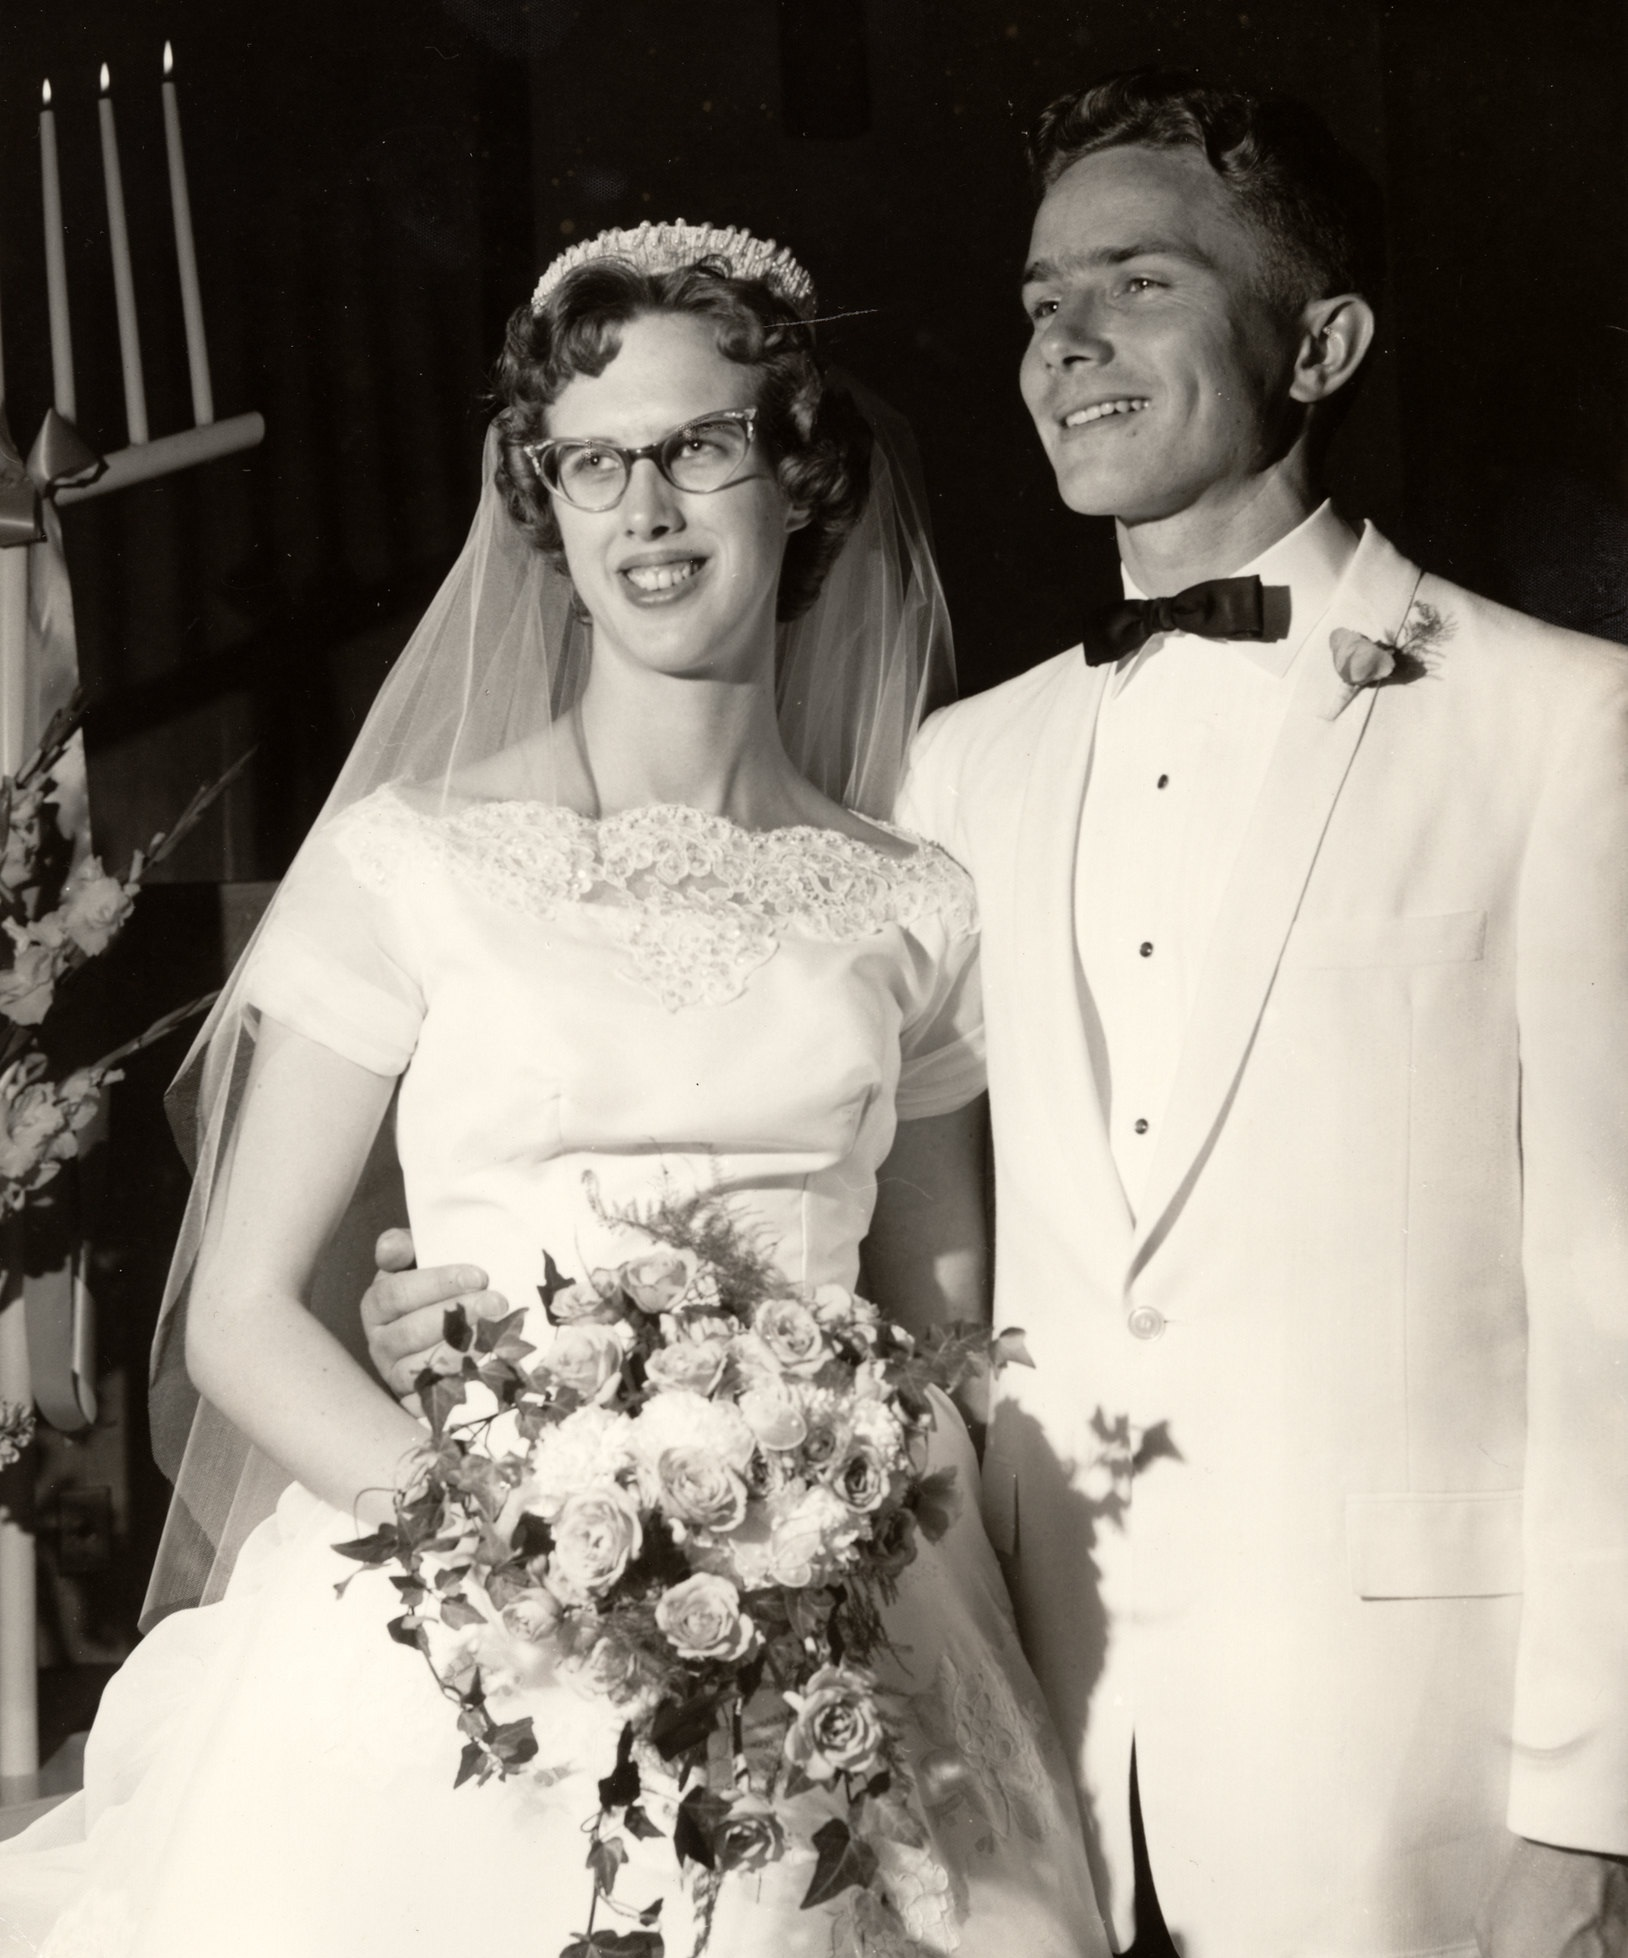 Luis meets Patricia Scofield while both are studying at Multnomah School of the Bible in Portland, Oregon. After their marriage in 1961, the two join an extensive missionary training program through Overseas Crusade.